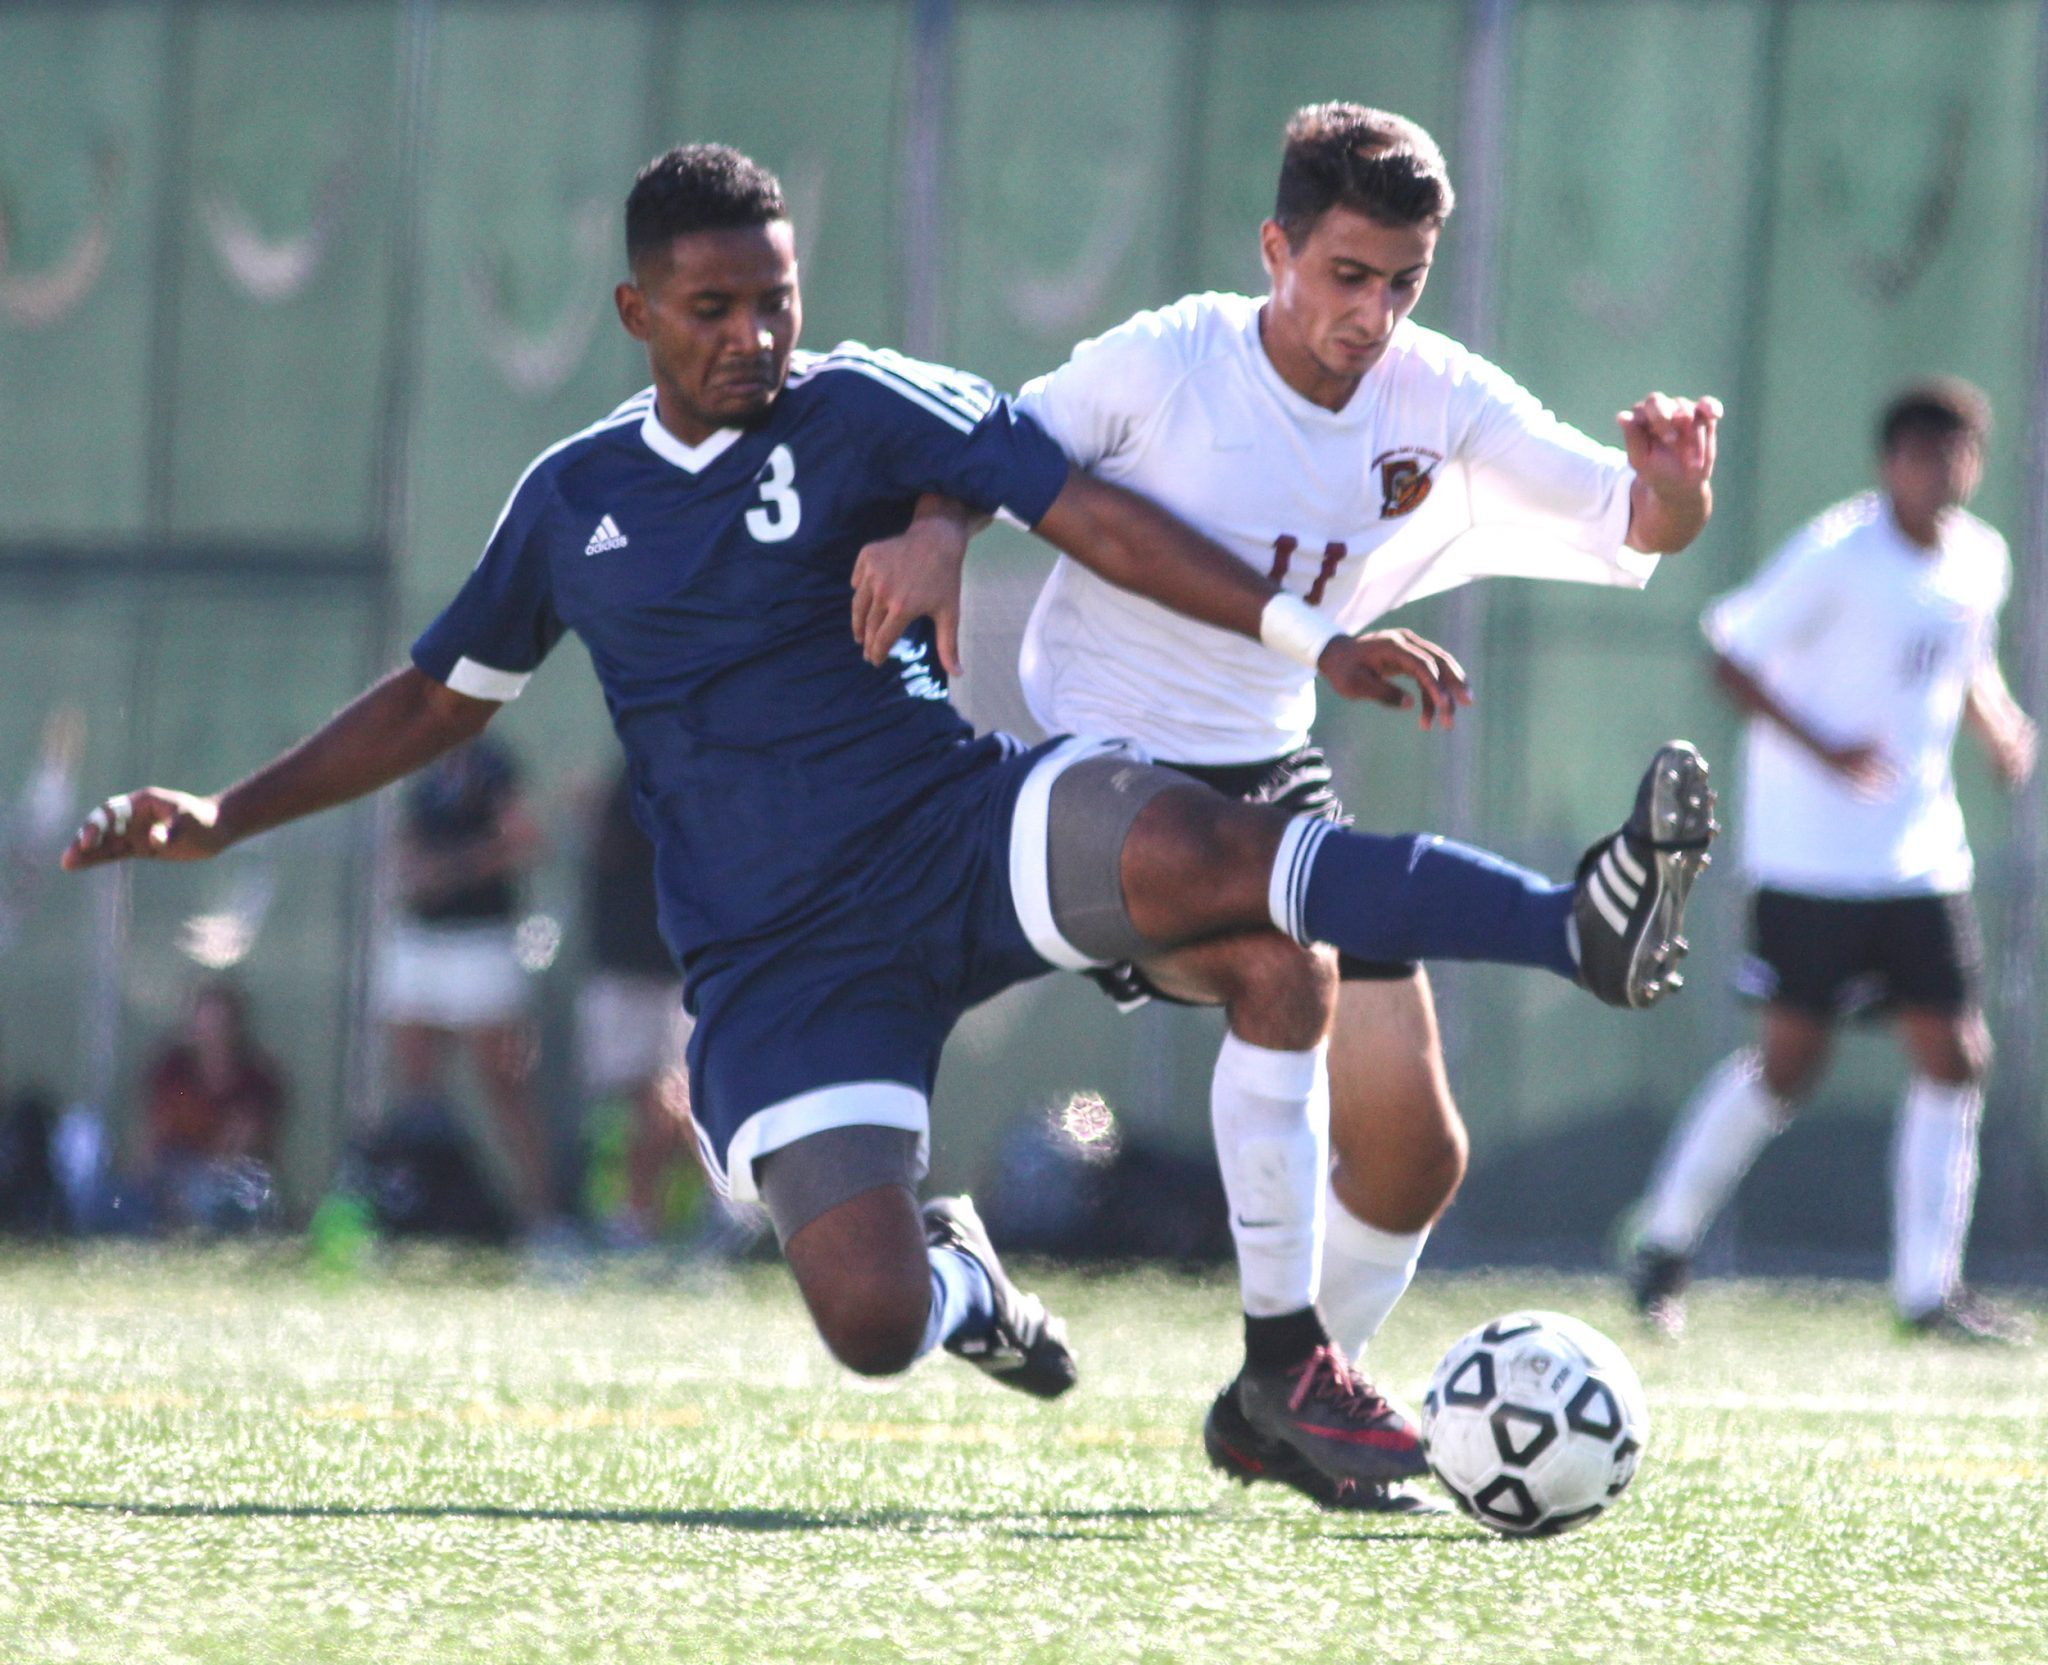 Samantha Molina/Courier Freshman forward Artin Almary defends the ball from the Warriors' defender Daniel Lumbrano at El Camino College on Friday, October 2, 2015. The Lancers tied with El Camino, 1-1.